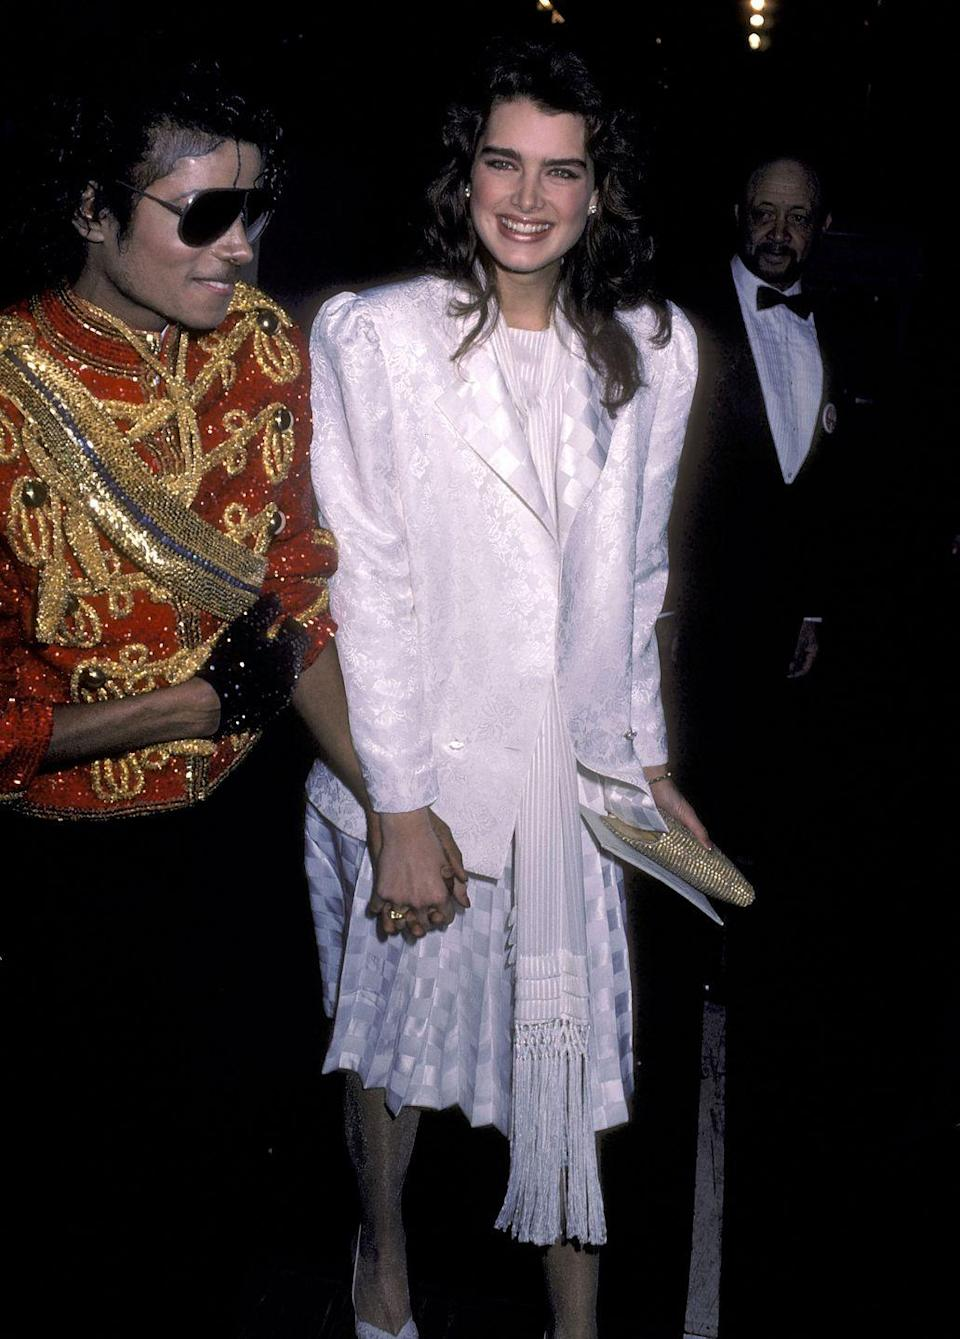 """<p>Here, Brooke is pictured at the 11th annual American Music Awards with Michael Jackson. Brooke and Michael were very good friends, and in 2009, she told <em><a href=""""https://www.rollingstone.com/music/music-news/brooke-shields-recalls-special-relationship-with-michael-jackson-104525/"""" rel=""""nofollow noopener"""" target=""""_blank"""" data-ylk=""""slk:Rolling Stone"""" class=""""link rapid-noclick-resp"""">Rolling Stone</a></em> that although he asked her to marry him several times, they had a strictly platonic relationship. """"You saw women who were more sexual, who wanted to throw themselves at him and feel like they were going to teach him. We just found each other, and we didn't have to deal with our sexuality,"""" she said. </p>"""